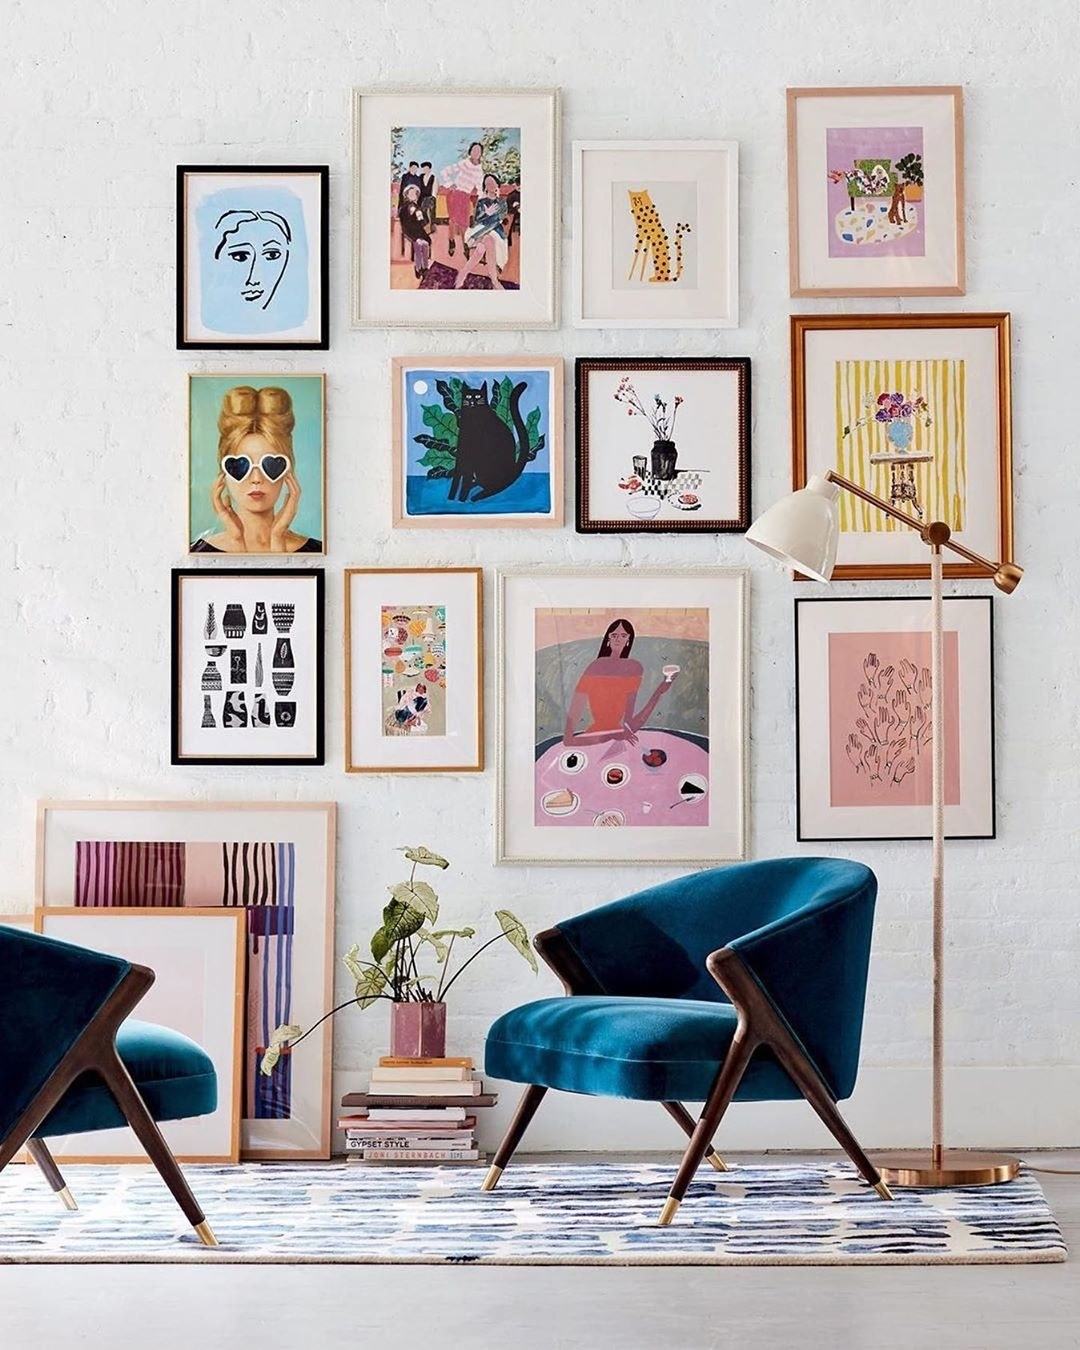 A simple gallery wall extends from the floor to ceiling behind two armchairs and a lamp